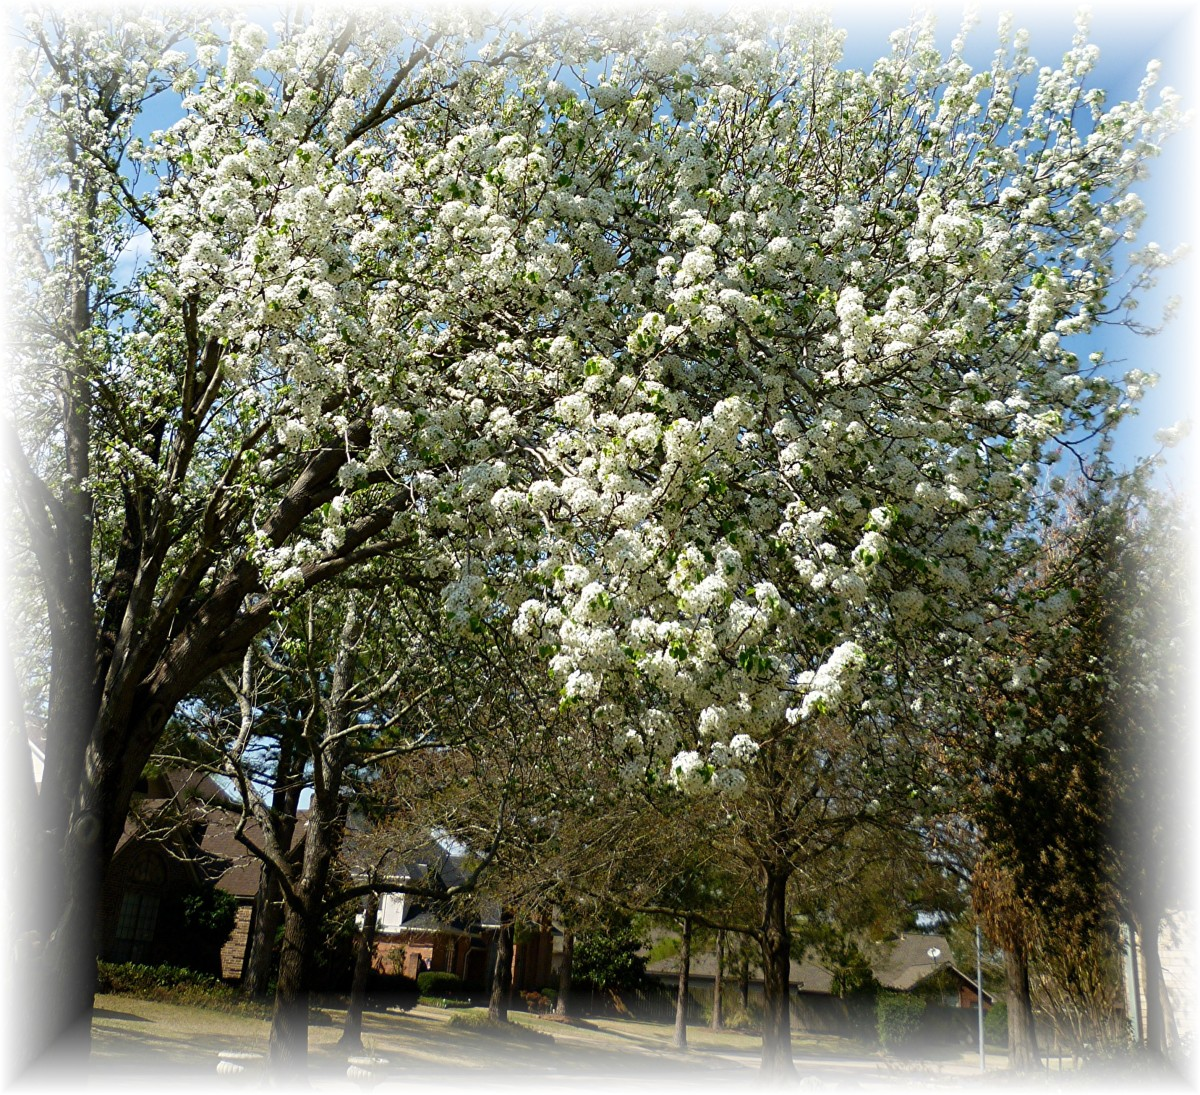 Bradford Pear trees in bloom in the Spring of the year.